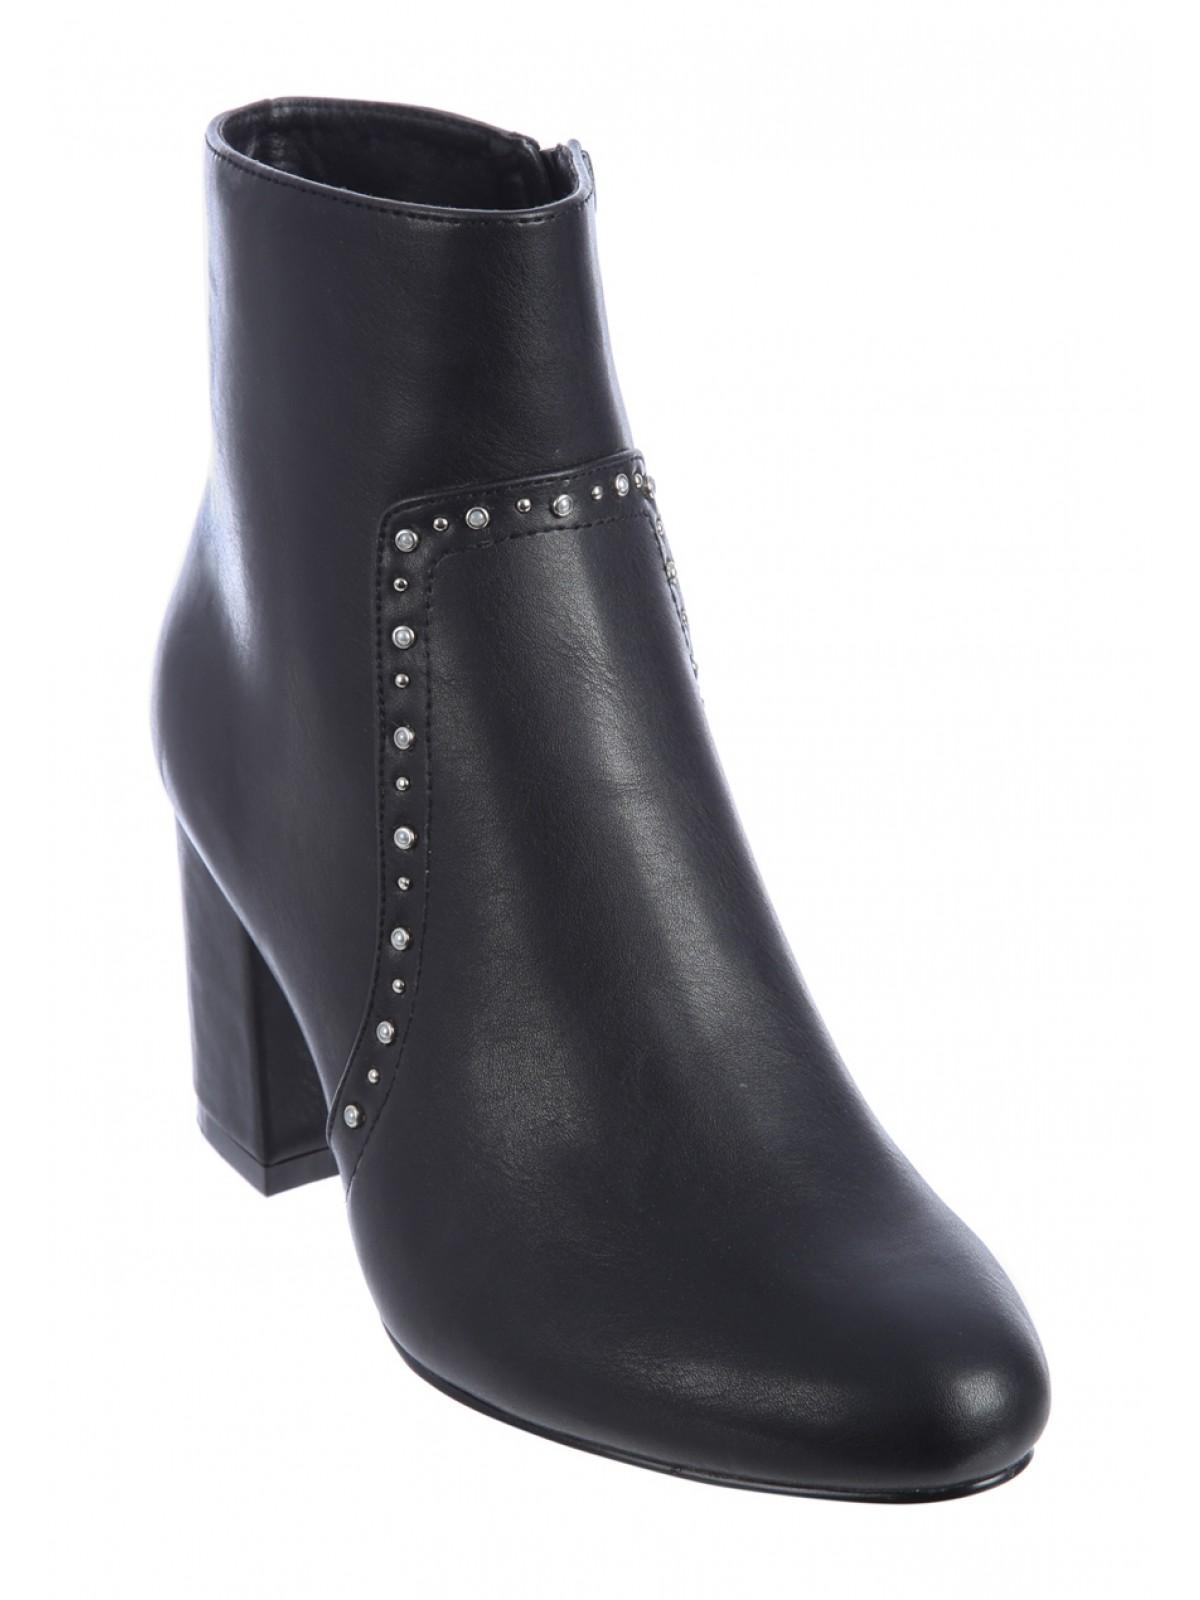 159c0801e1 Home; Womens Black Studded Ankle Boots. Back. PreviousNext